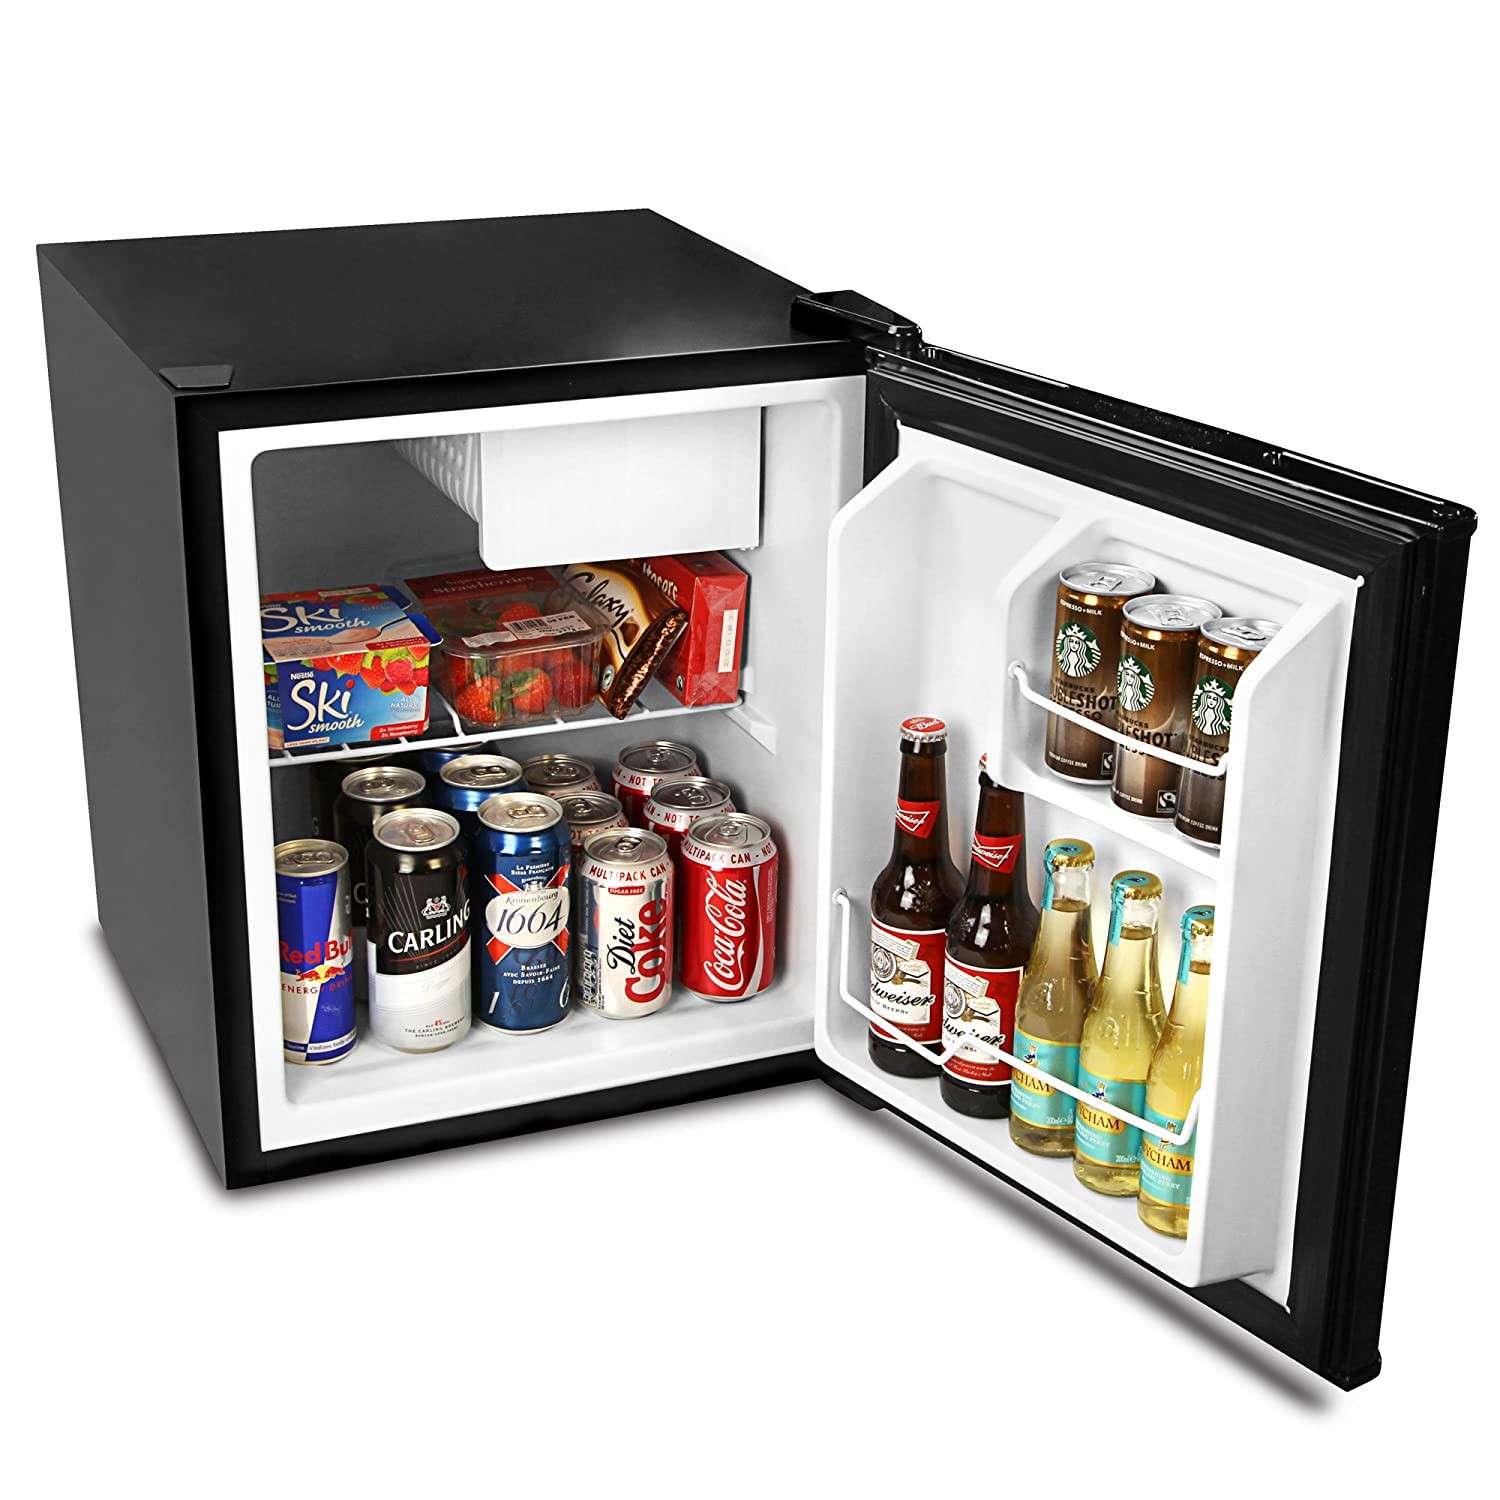 bar@drinkstuff Frostbite Zero Degrees Mini Fridge with Icebox 49ltr Black - Mini Fridge with Freezer Compartment